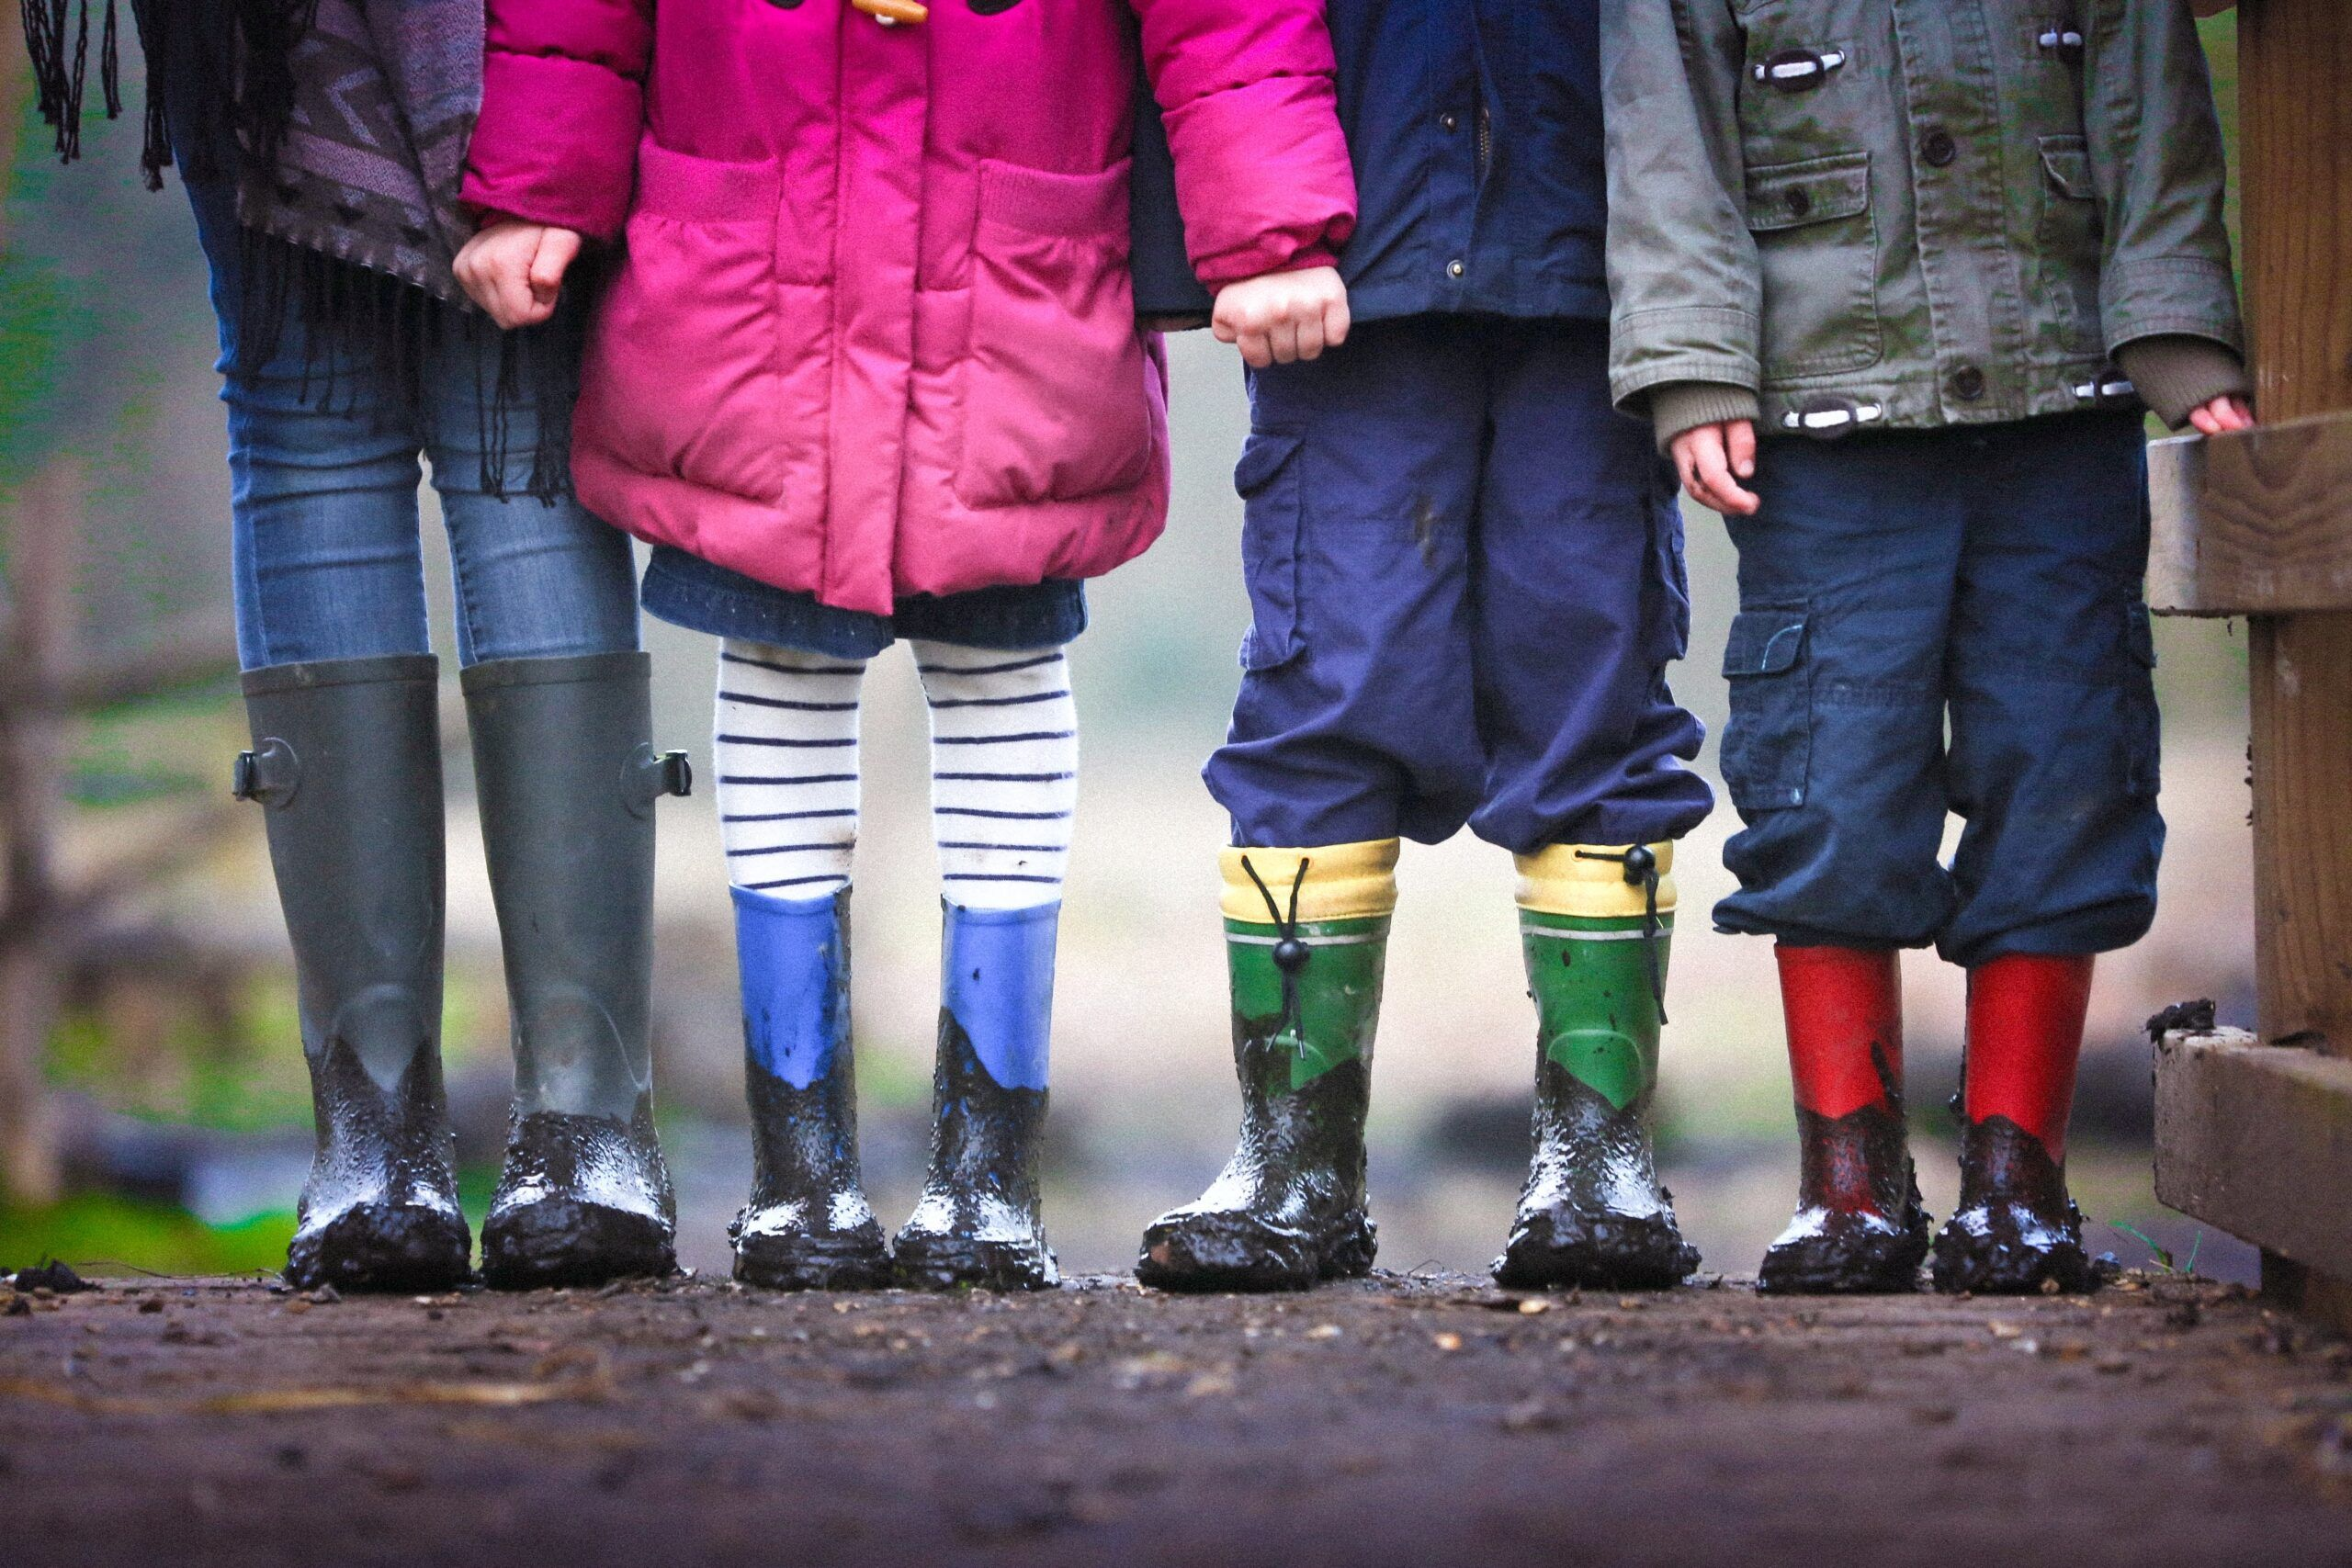 Four Children standing on a muddy path together